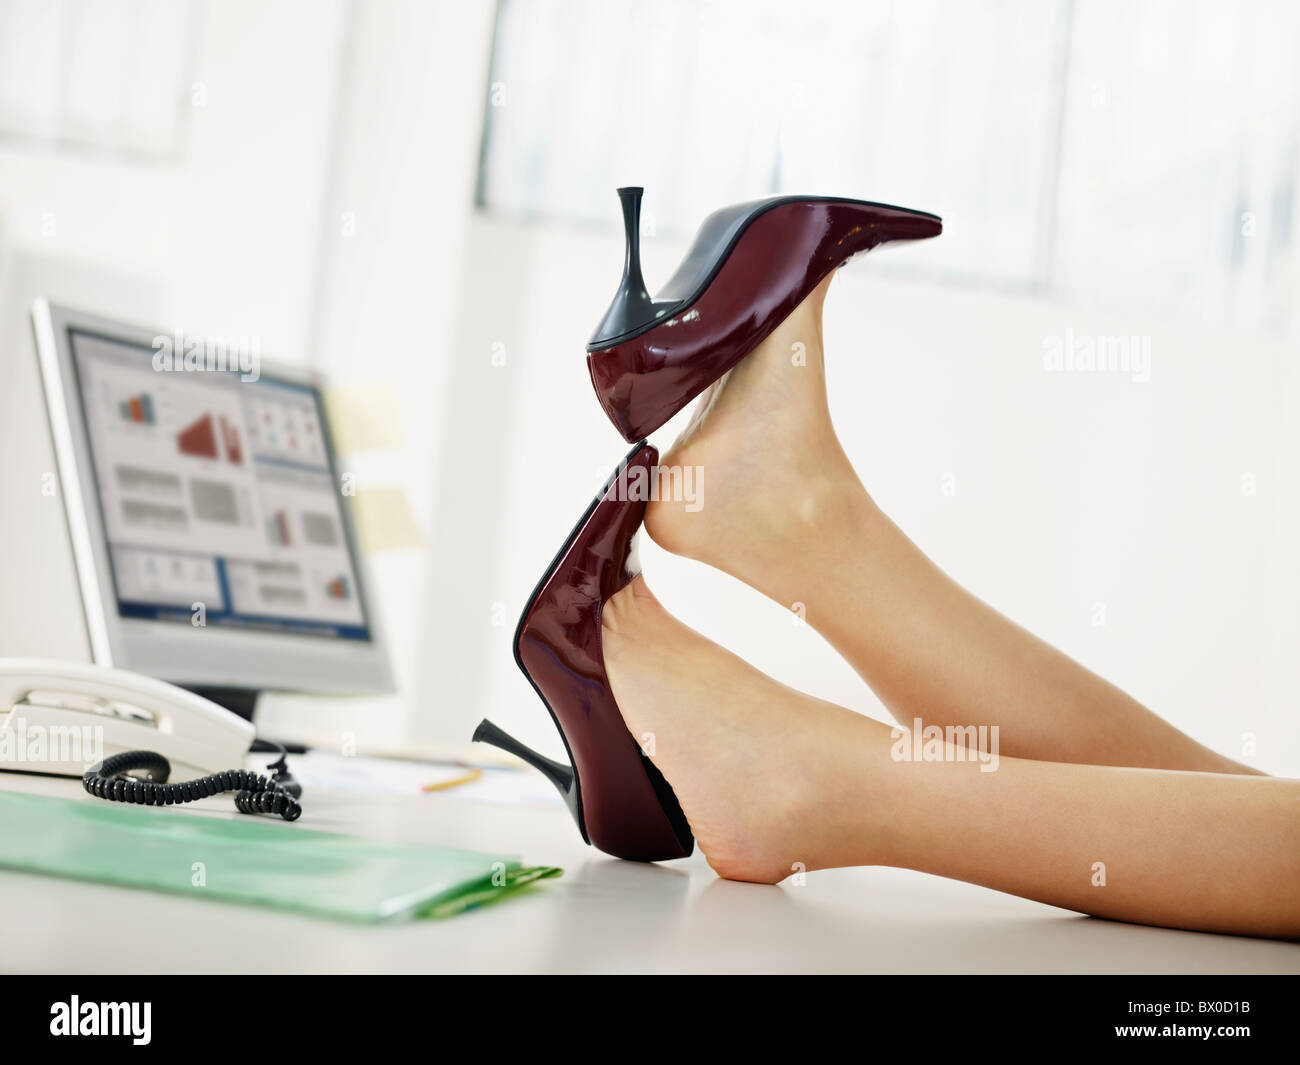 woman taking off shoes in office - Stock Image